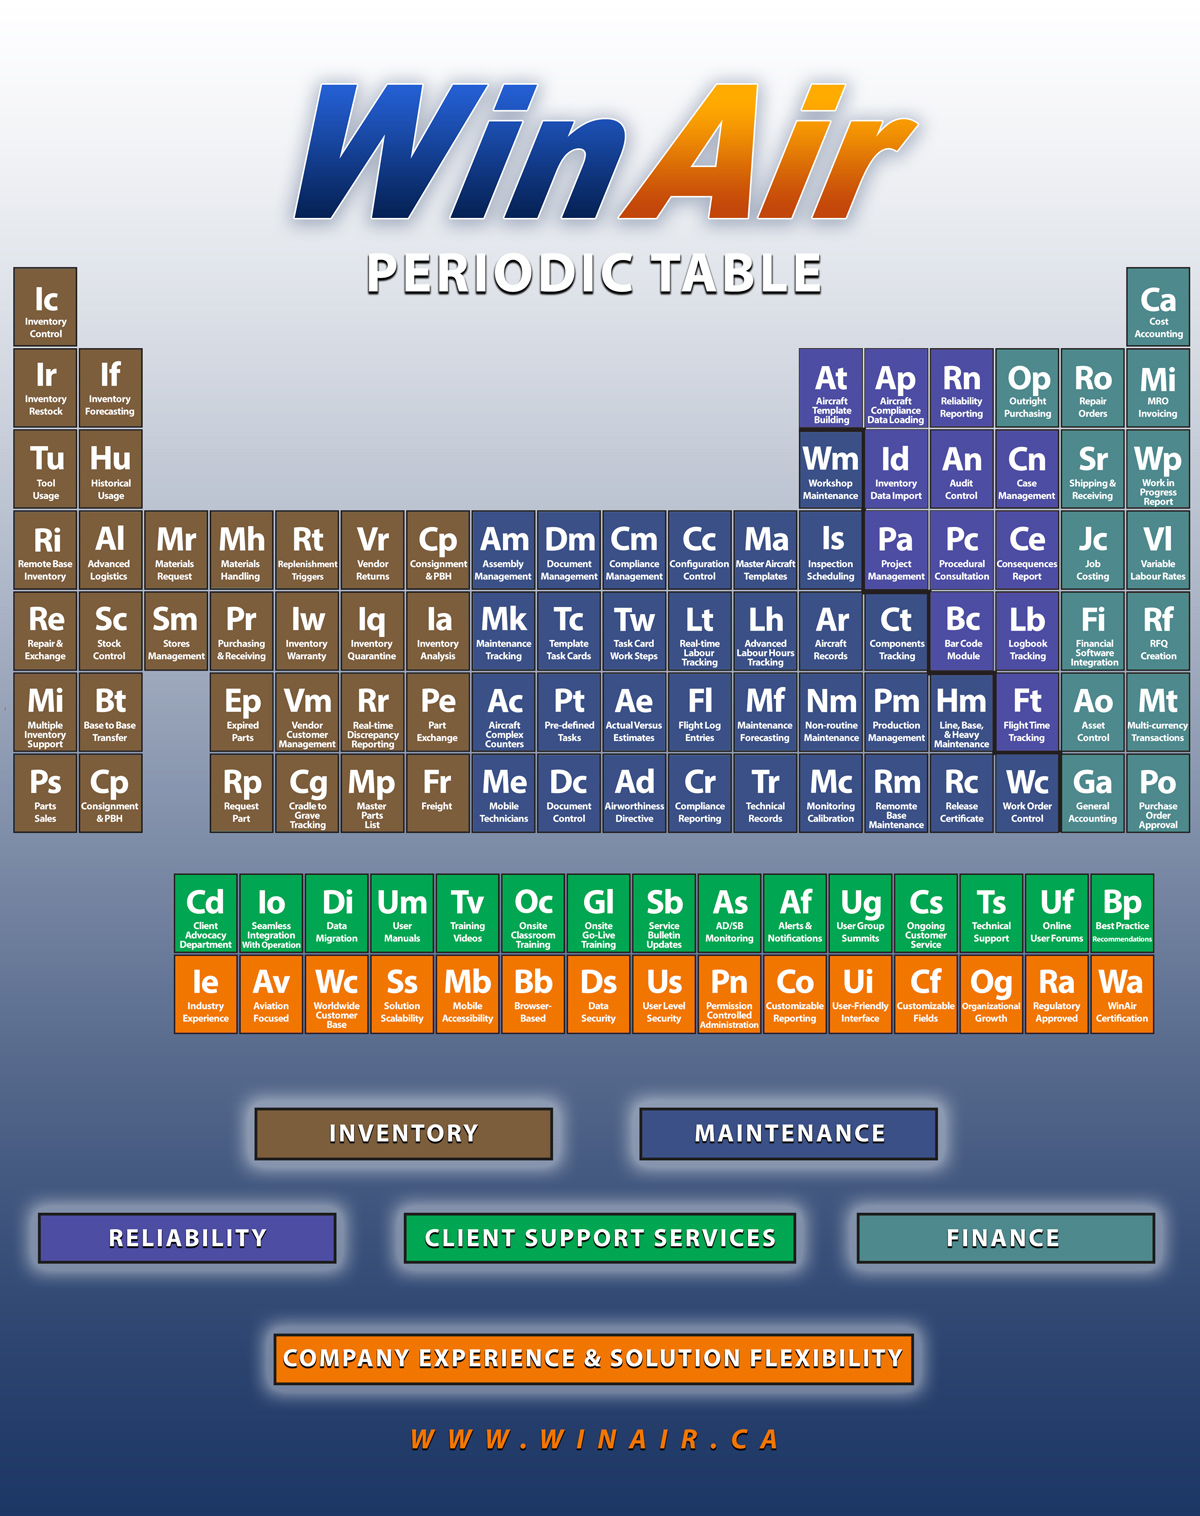 Periodic Table of Aviation Management Software Success Factors infographic